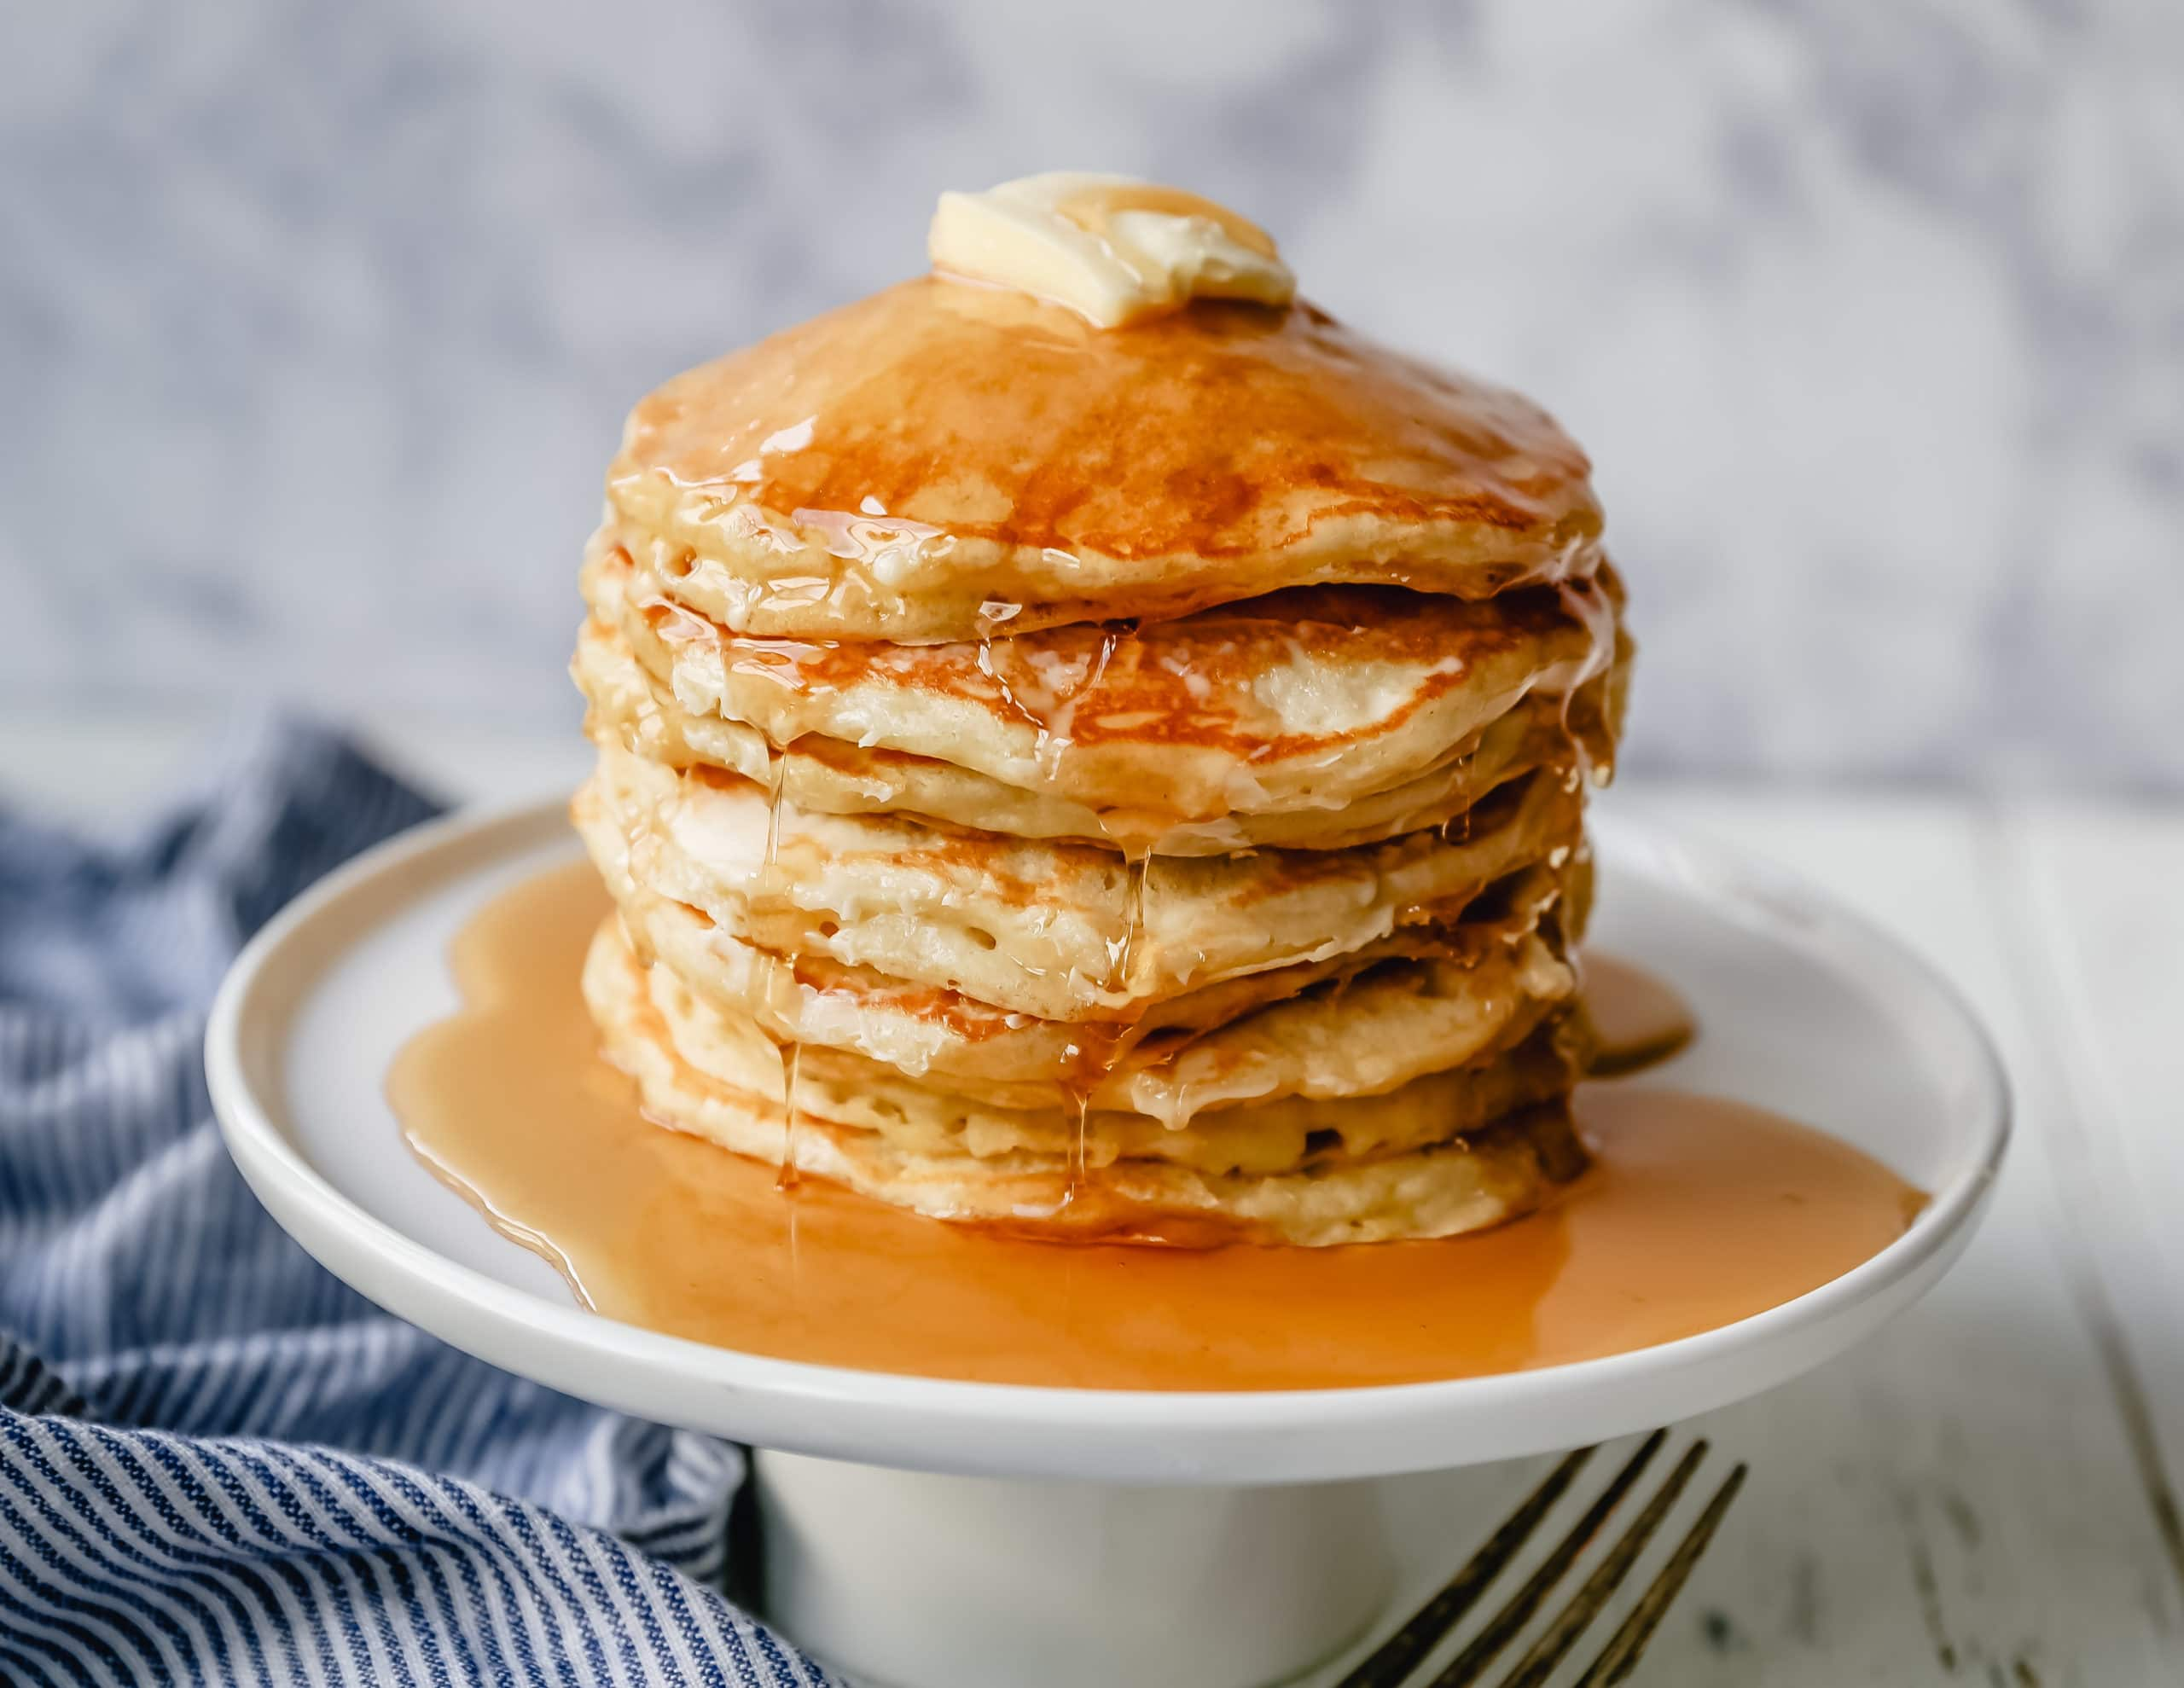 BEST BUTTERMILK PANCAKES. The best homemade buttermilk pancake recipe! This is the only pancake recipe you will ever need. Tender texture, light and fluffy, and these pancakes will melt in your mouth!